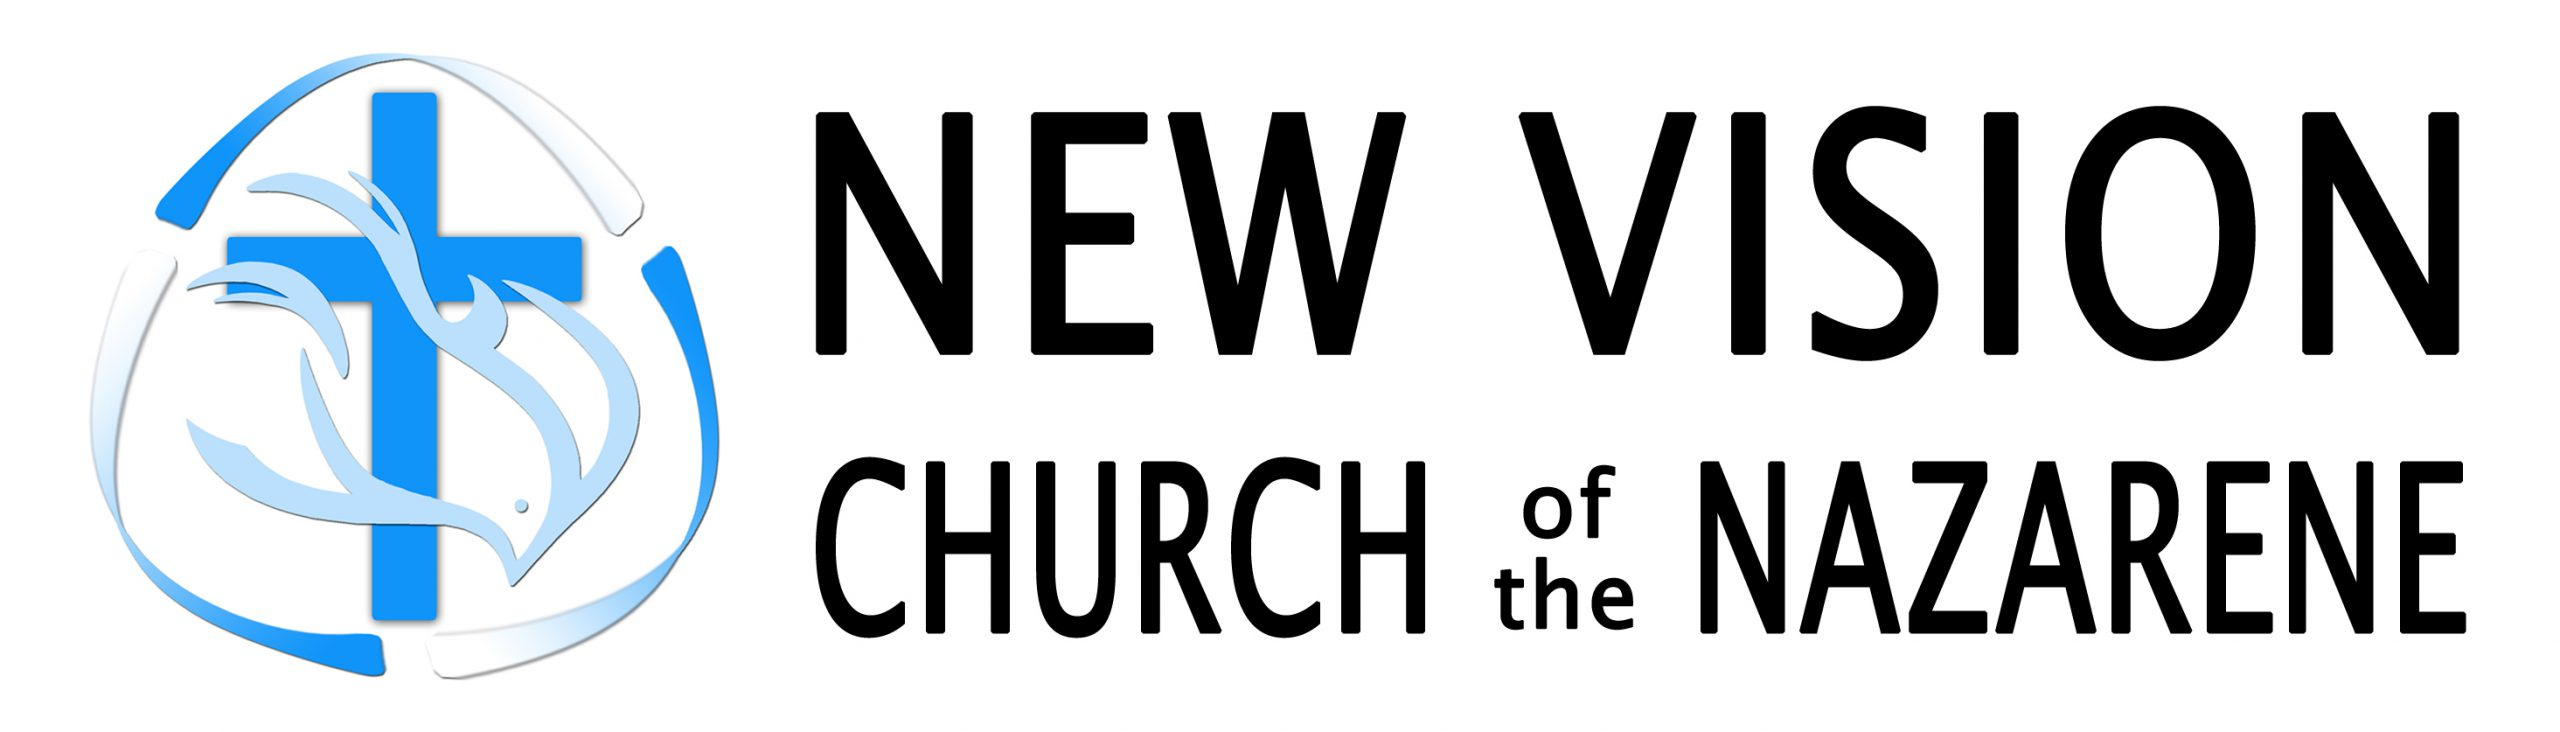 New Vision Church Logo